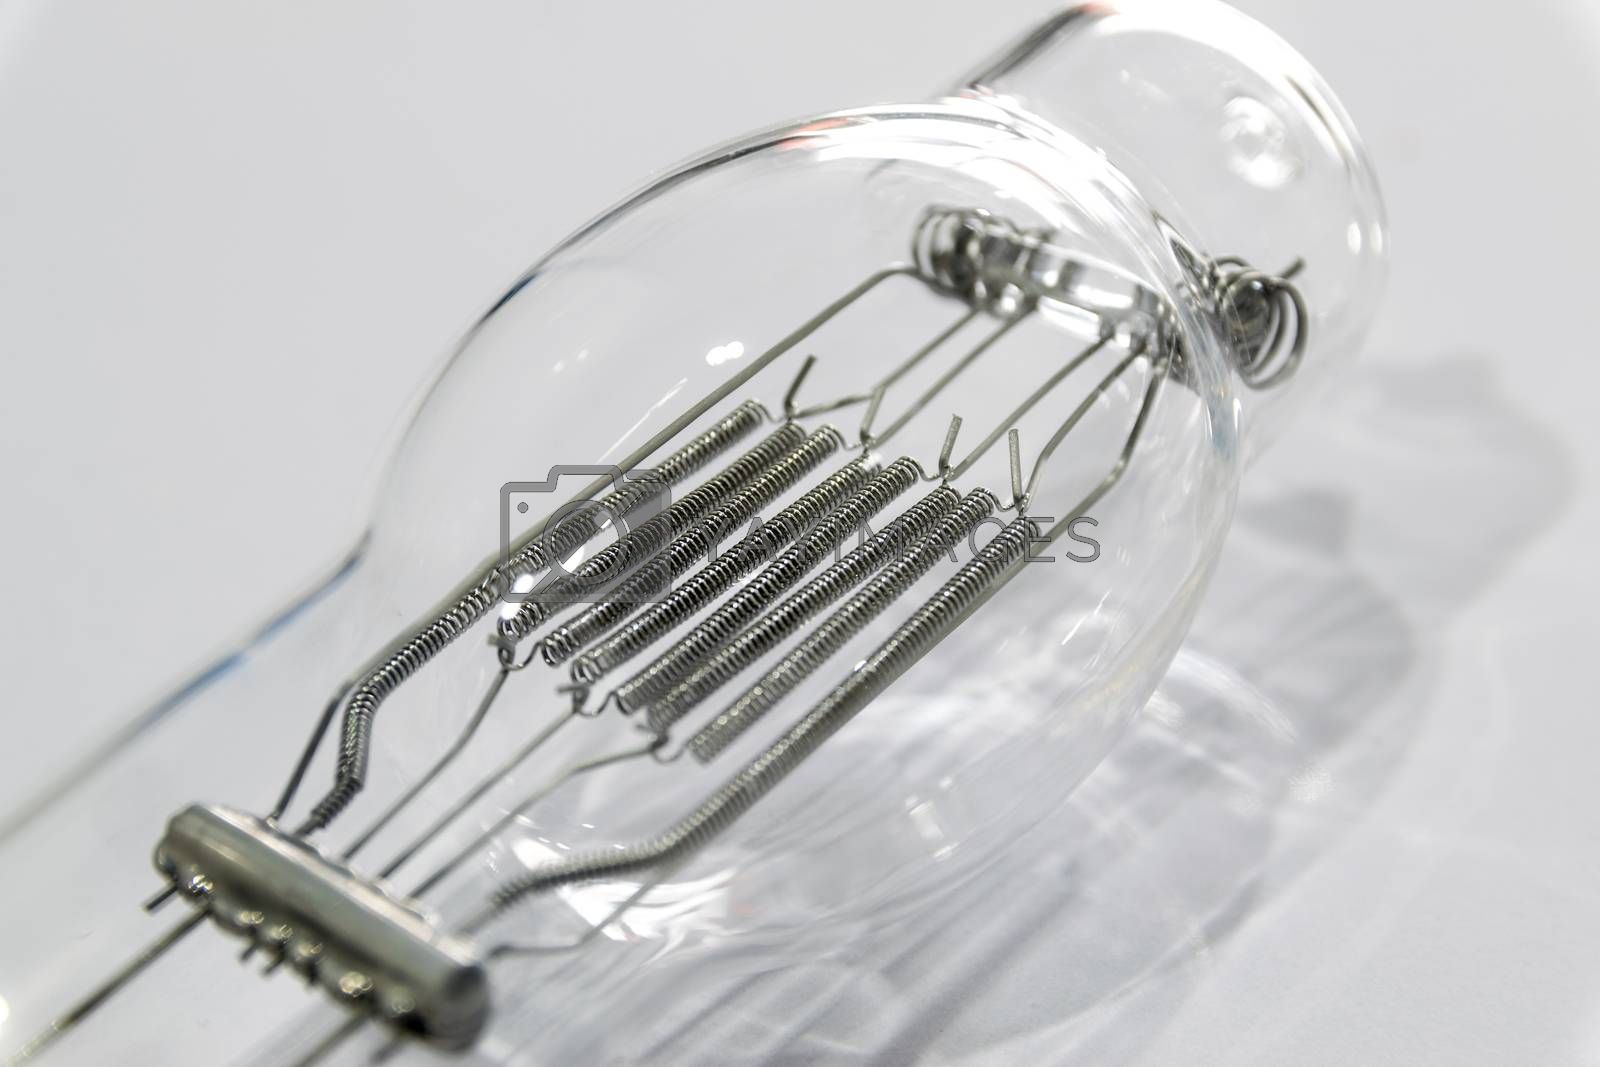 Incandescent lamp emitting light as a result of being heated